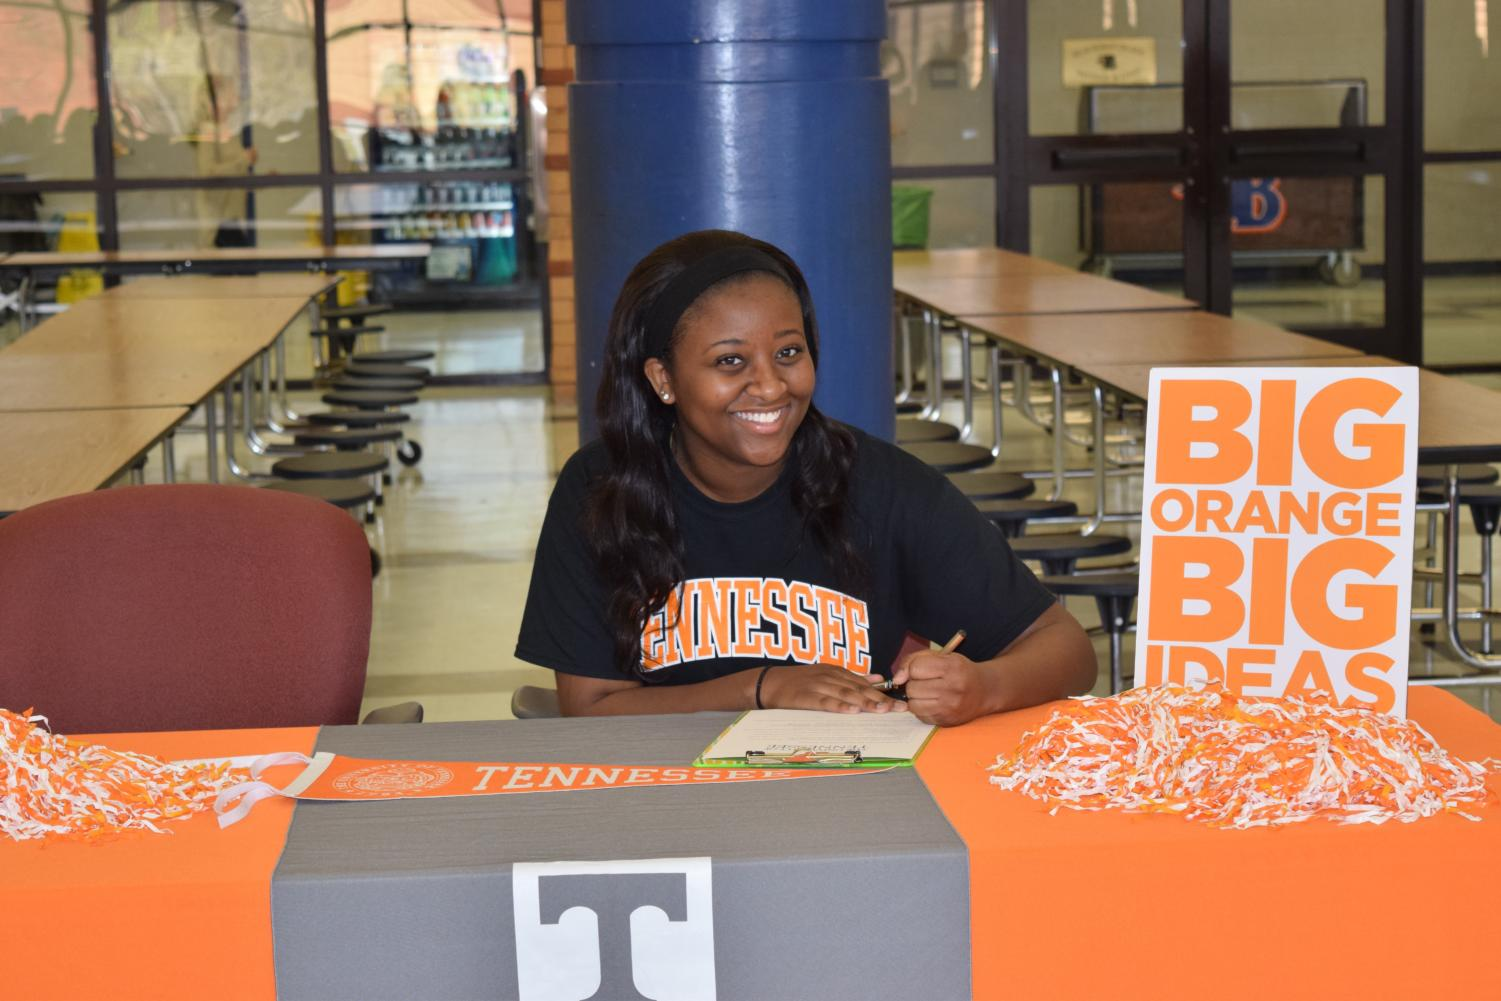 Jaida+Hunt+will+attend+the+University+of+Tennessee%2C+Knoxville+in+the+fall.